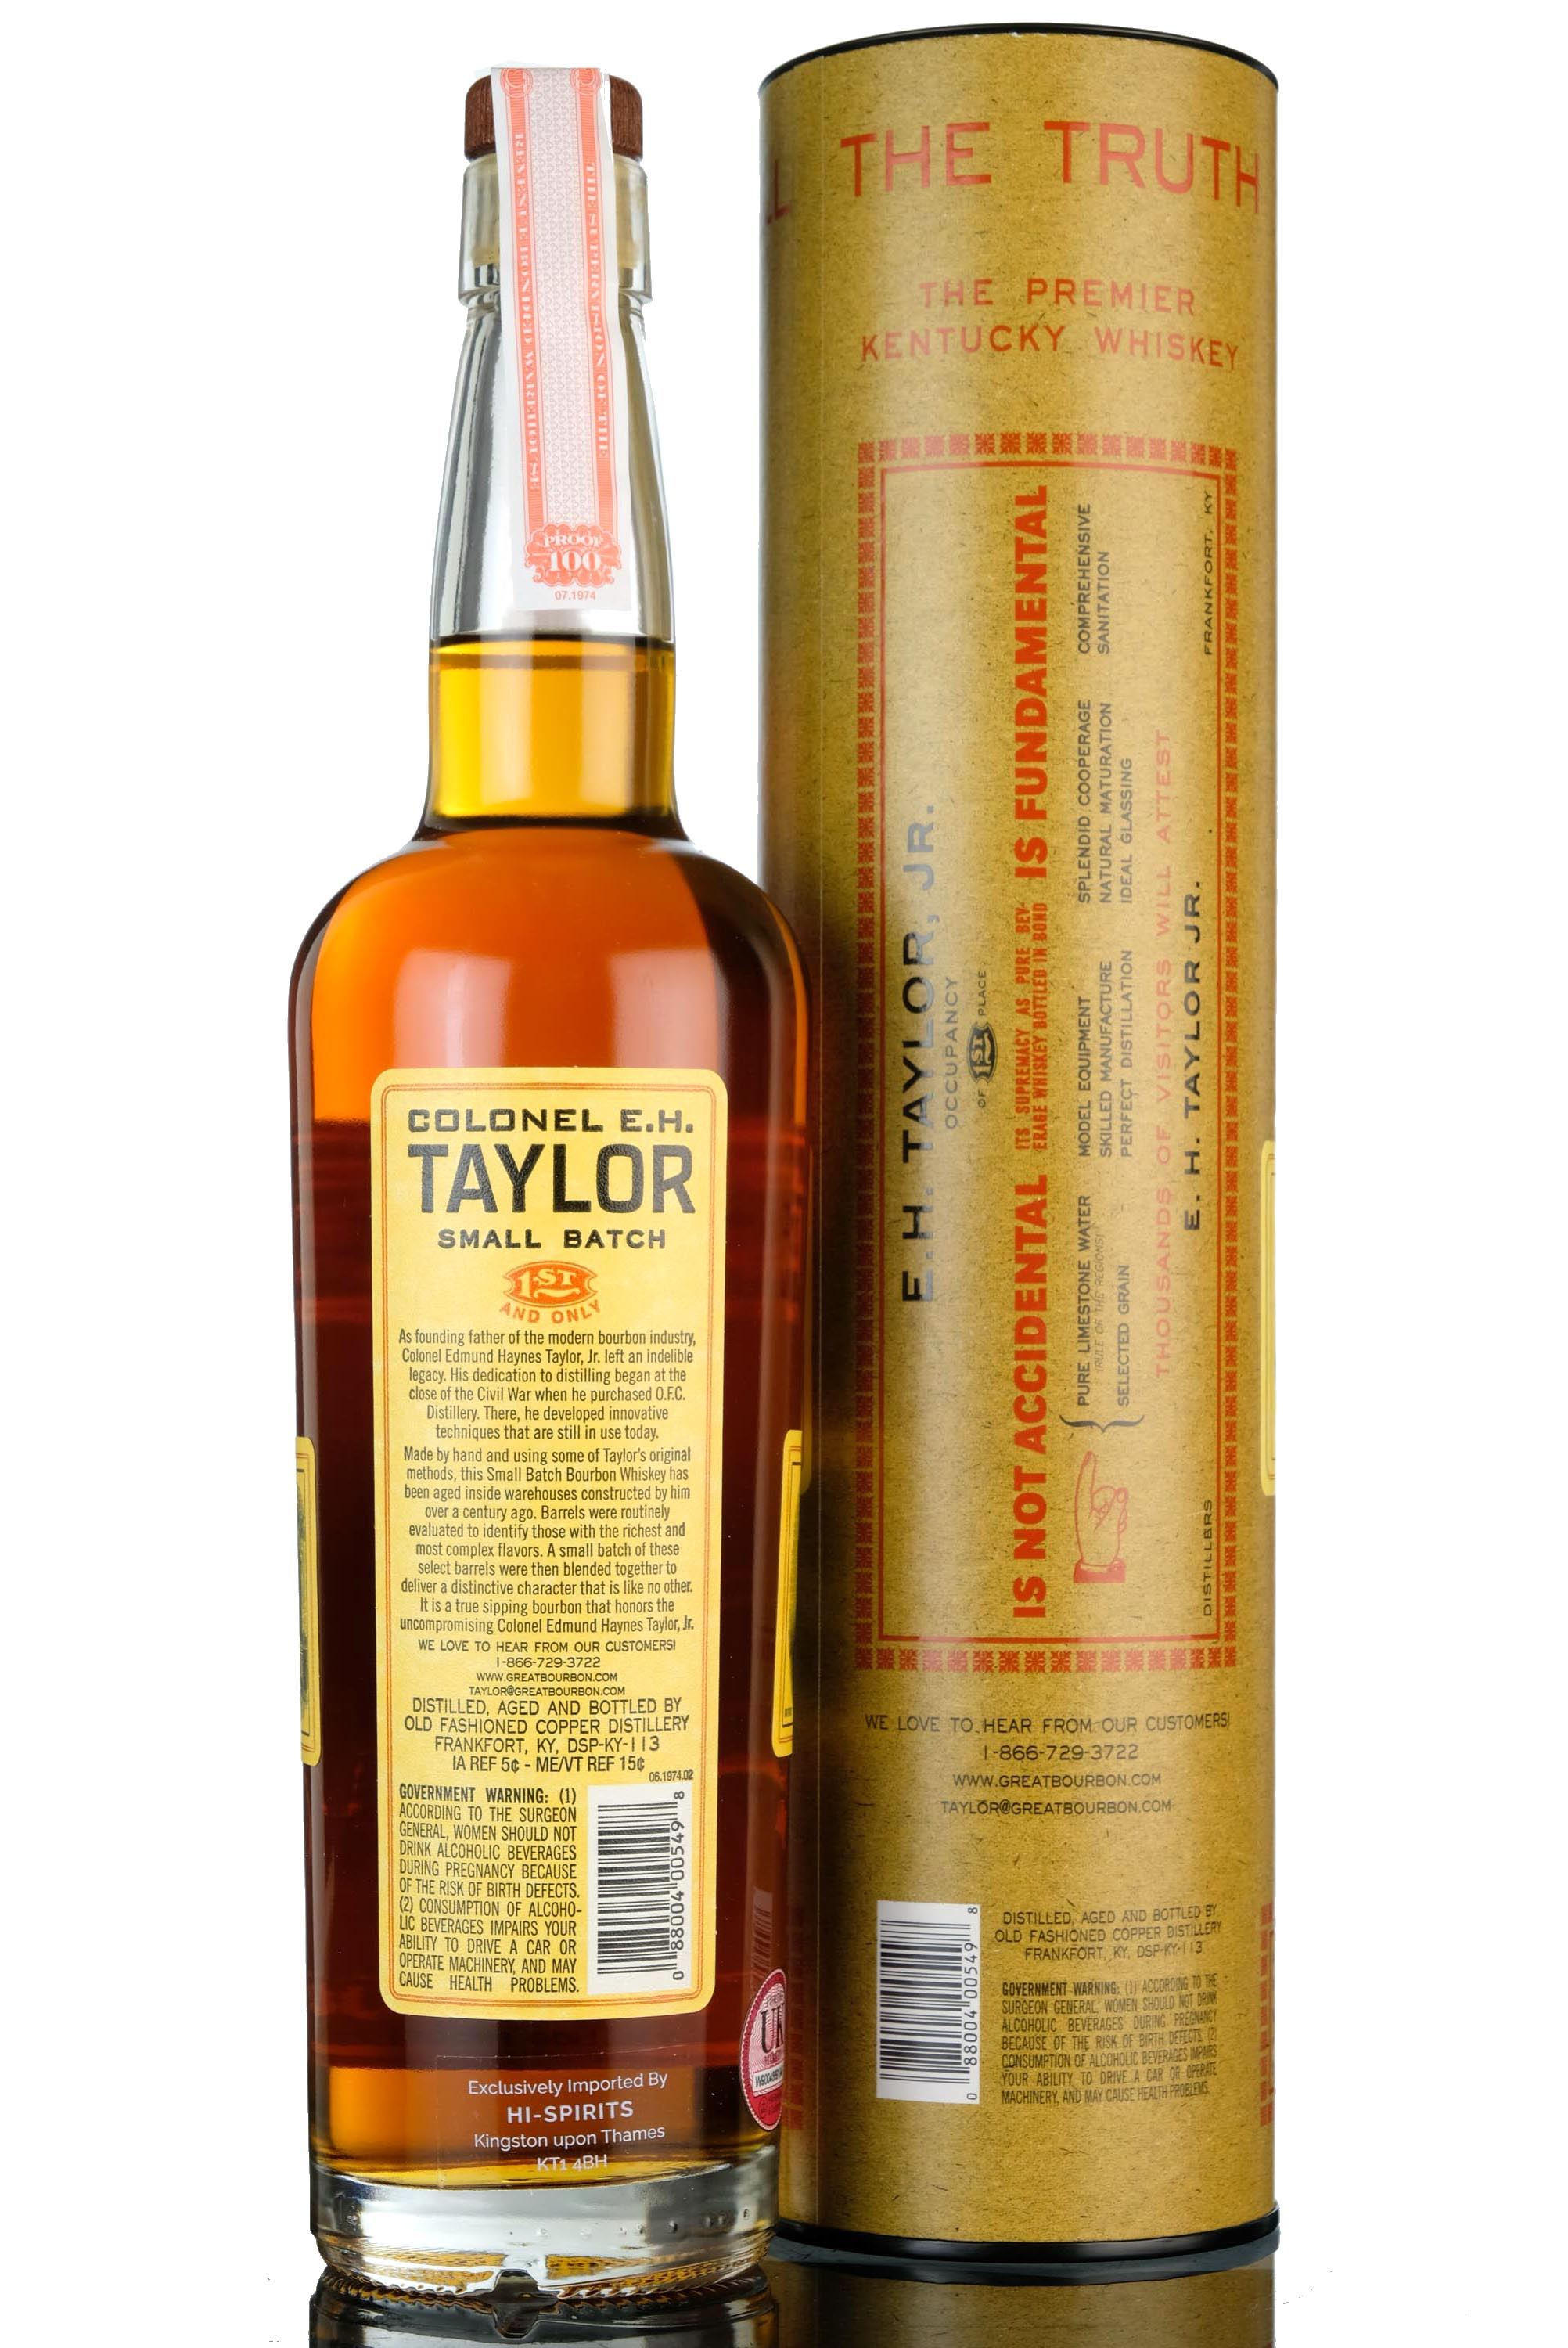 colonel e.h taylor 1st and only - straight kentucky bourbon whiskey